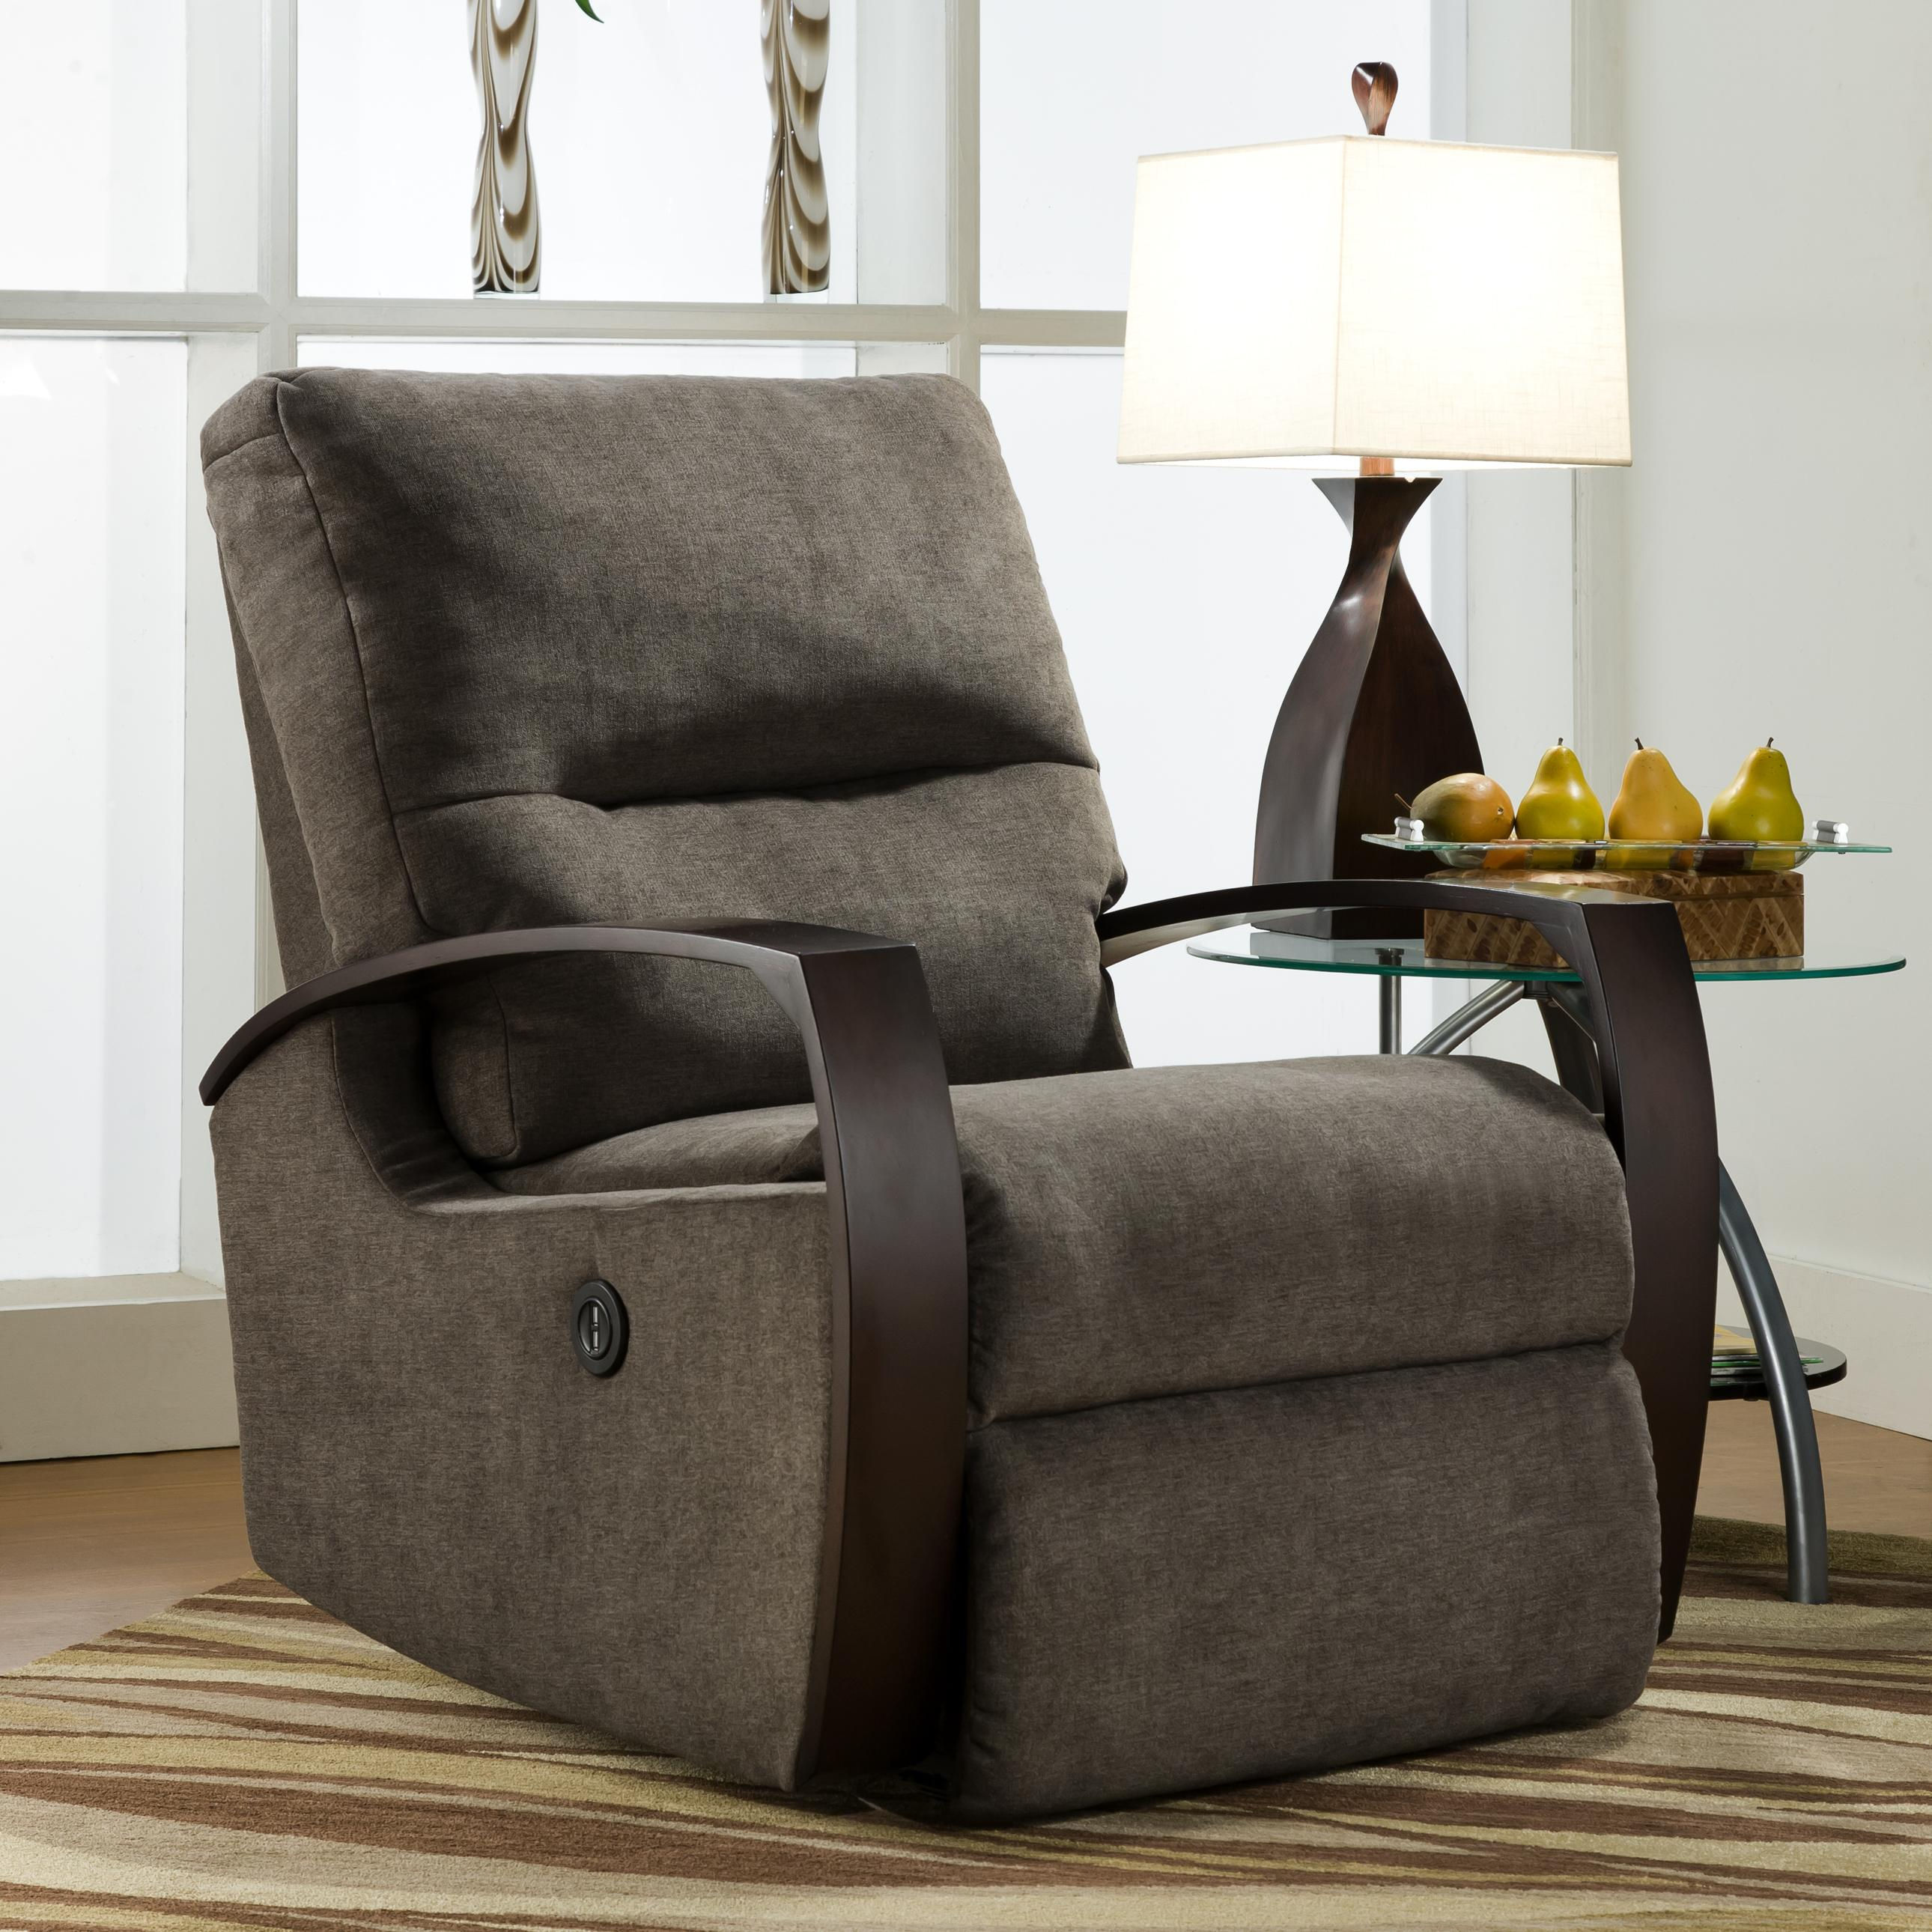 Wood Arm Recliner ~ Southern motion recliners rocker recliner with wooden arms